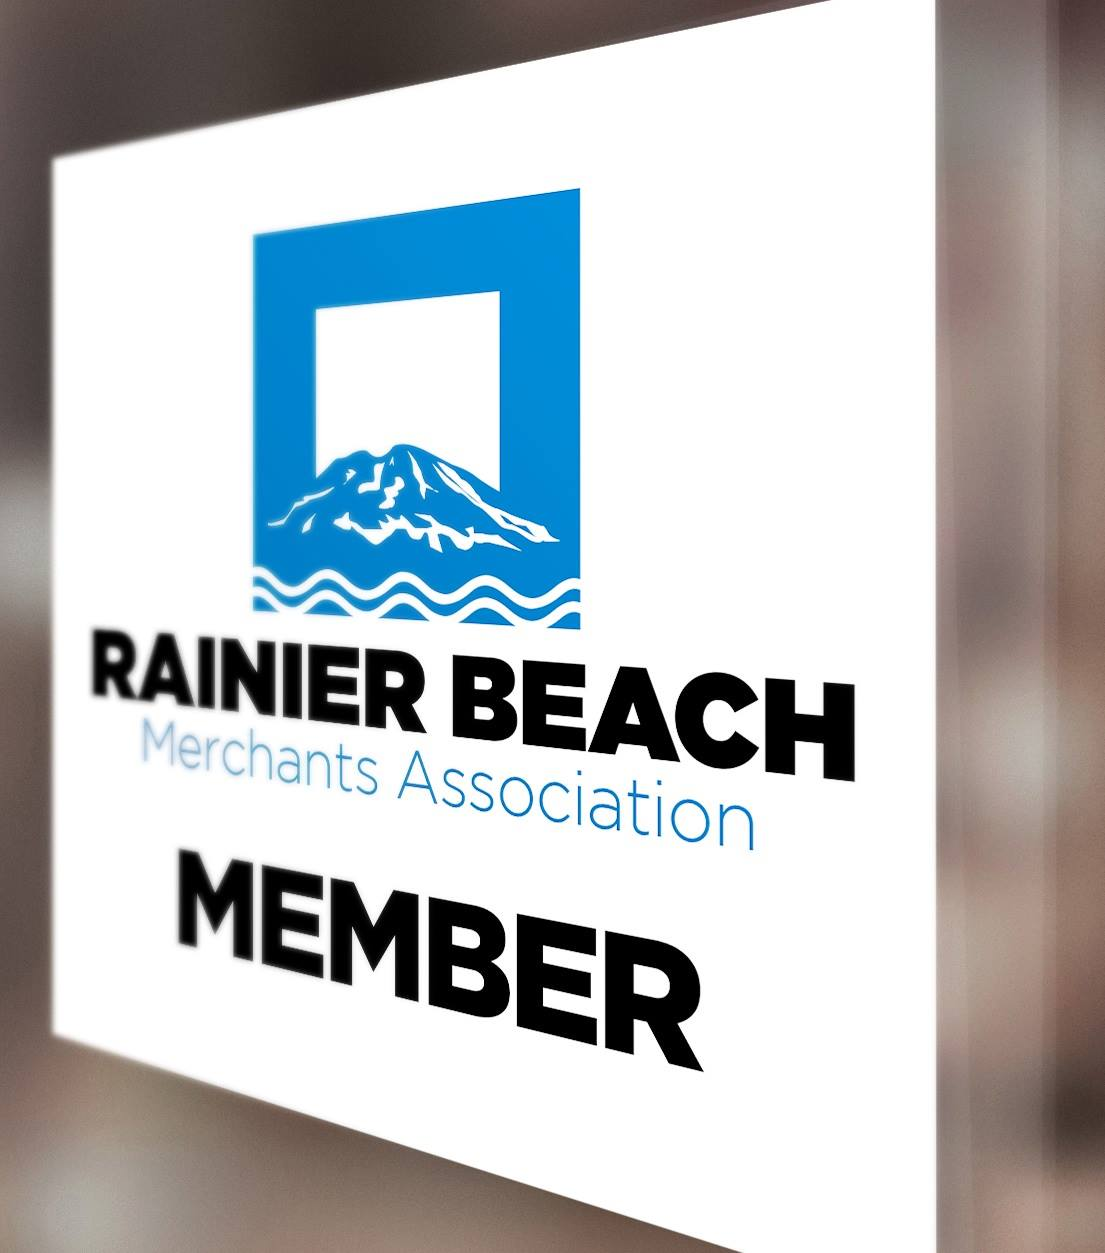 Rainier Beach Merchants Association Member